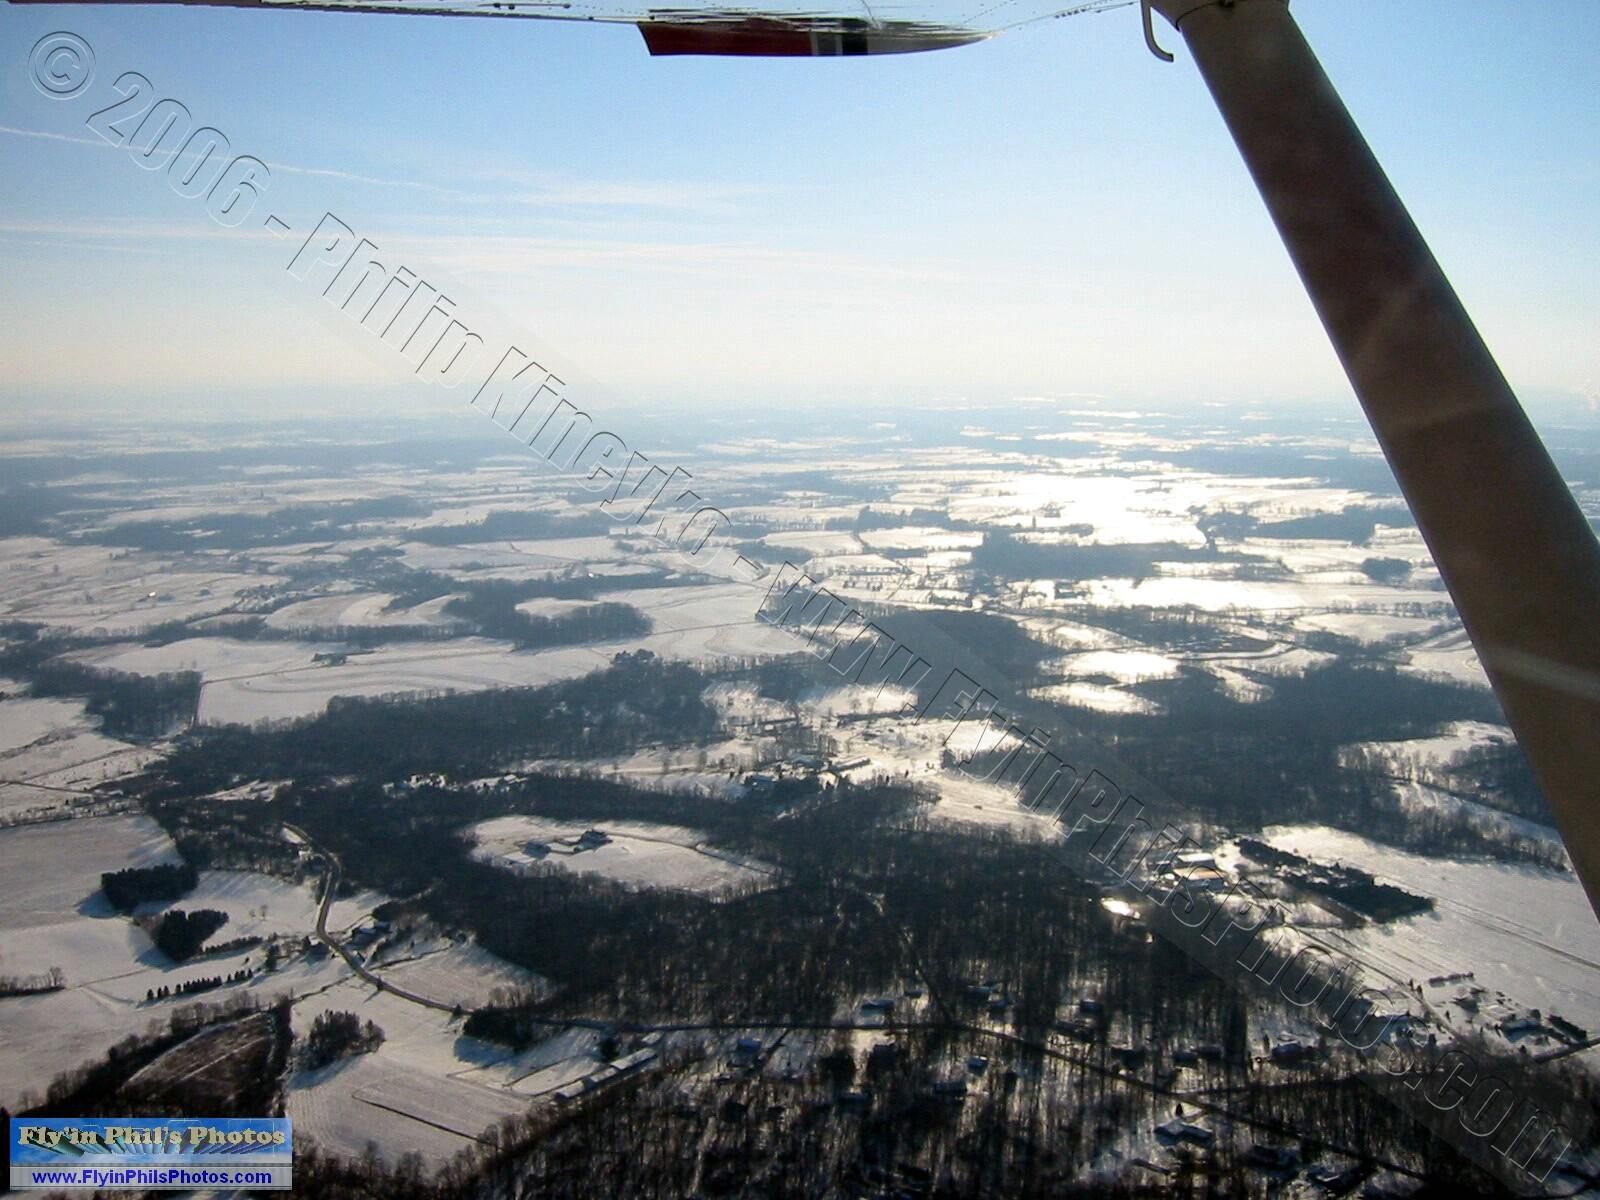 Fly'in Phil's Photos - Landscapes & Terrain Aerial Photo